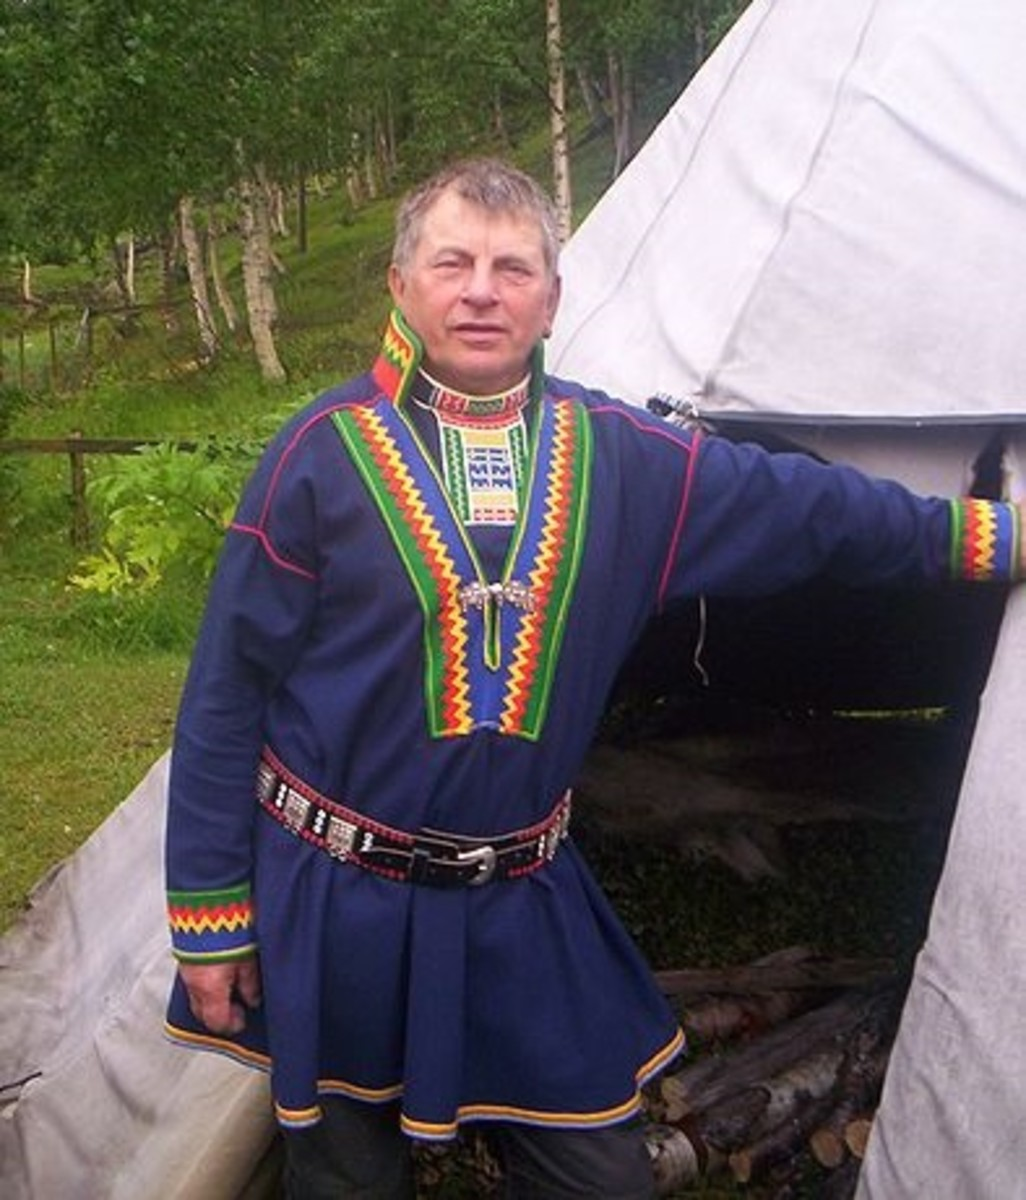 A Saami man in traditional dress. Photo by Norbert Kiss.